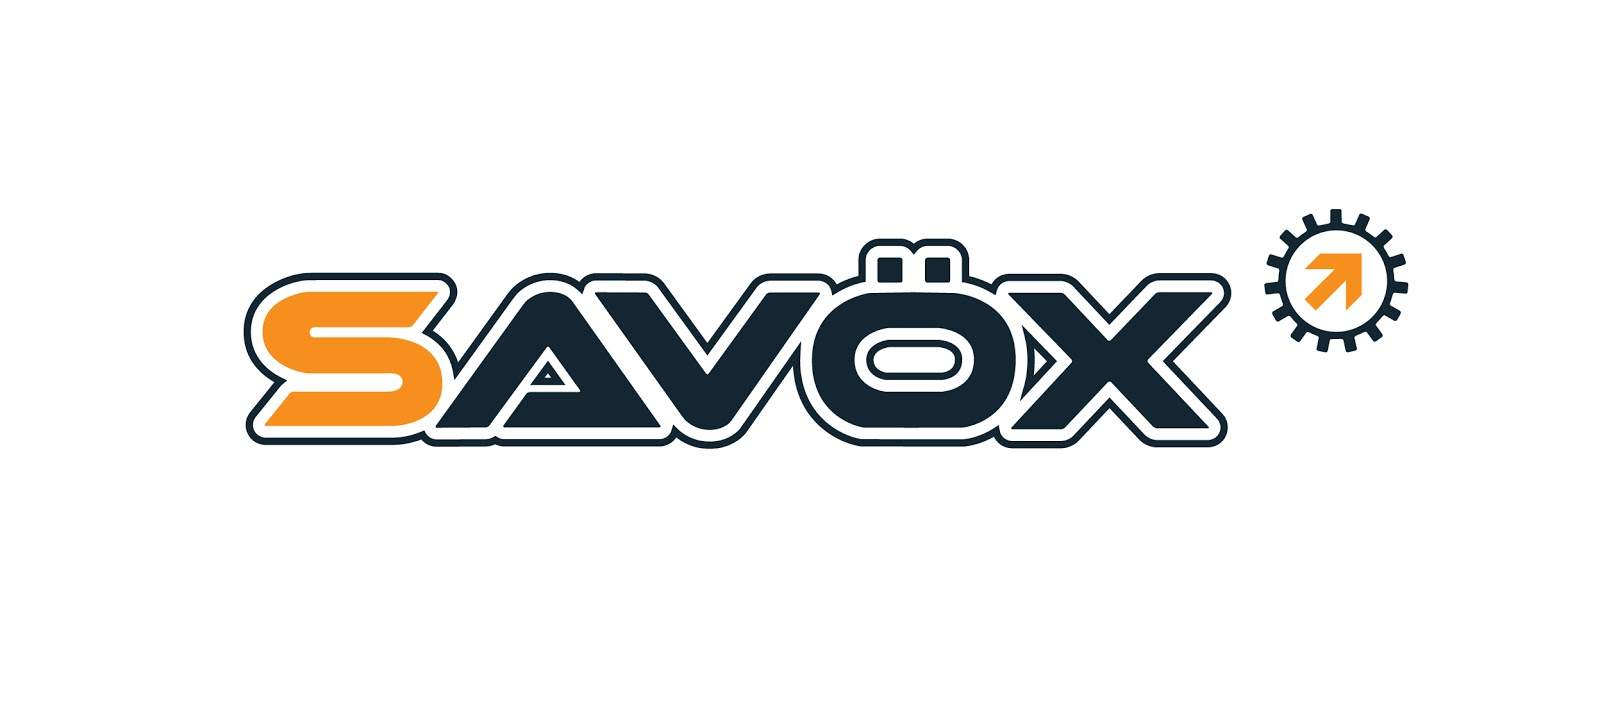 Arttech further New Savox Releases further 250 Hard Drives Will Make One Epic F1 Car 127581 in addition 6539 F besides Playmobil 5238 Bateau Pirate Avec Moteur Submersible. on rc helicopter motor